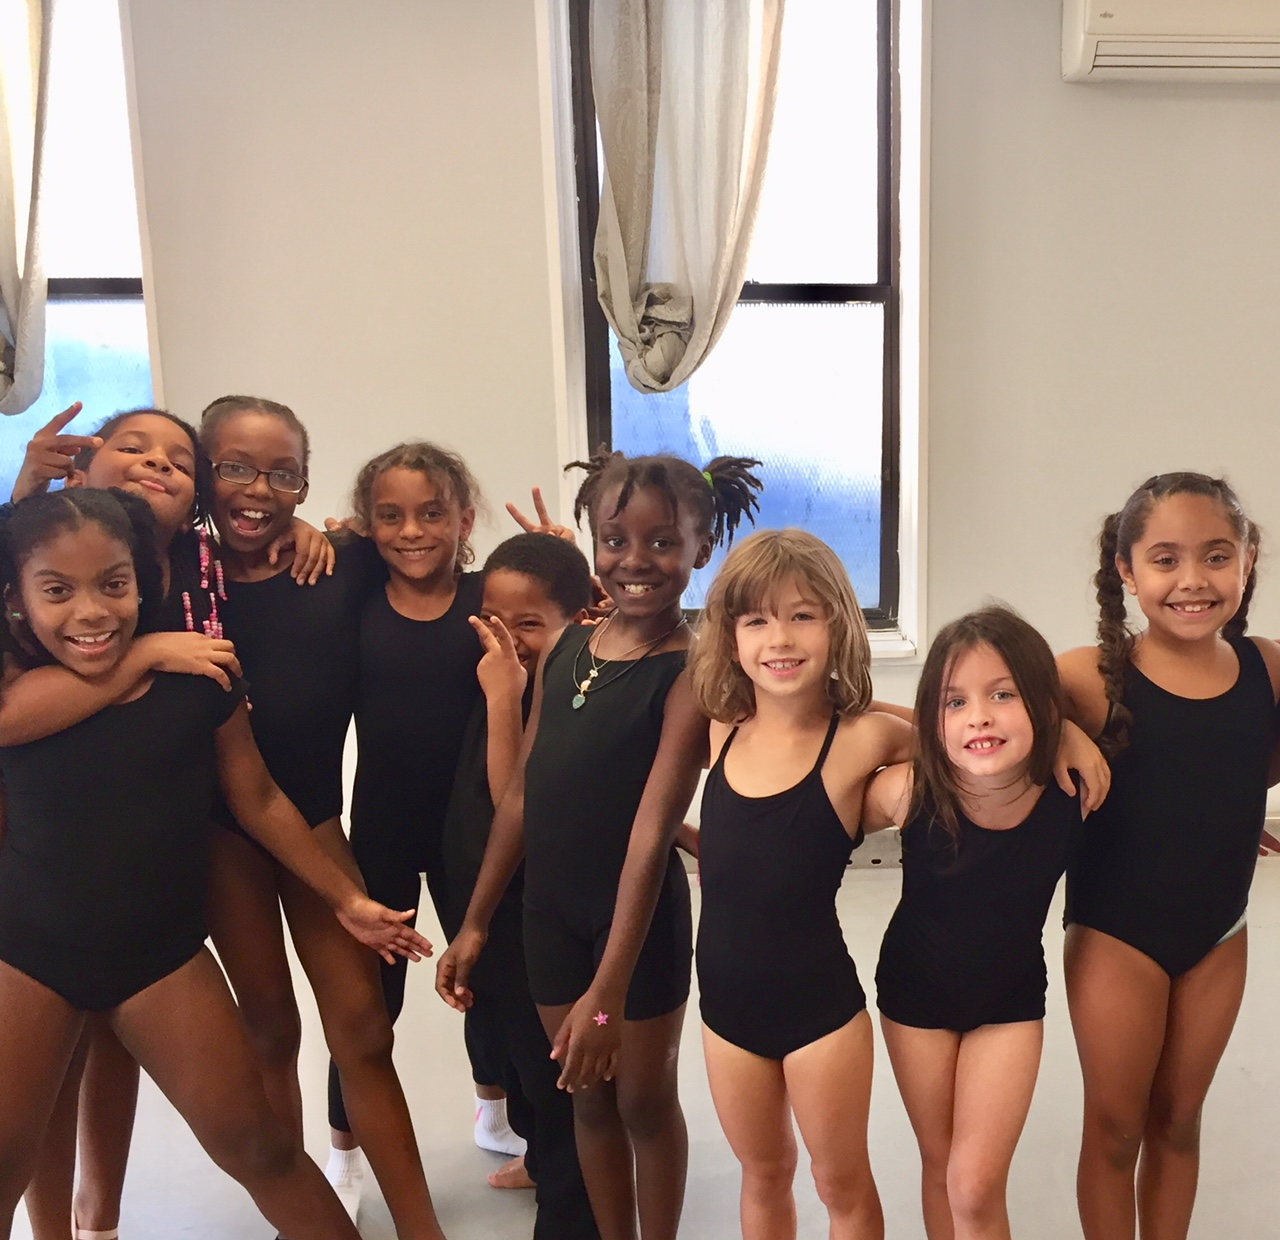 Modern 2 students get silly before class. Dance classes are not only places to learn to leap and turn, they are places where lasting bonds are made and self-confidence, creativity, and meaningful relationships flourish. Your donation gives that to a child!